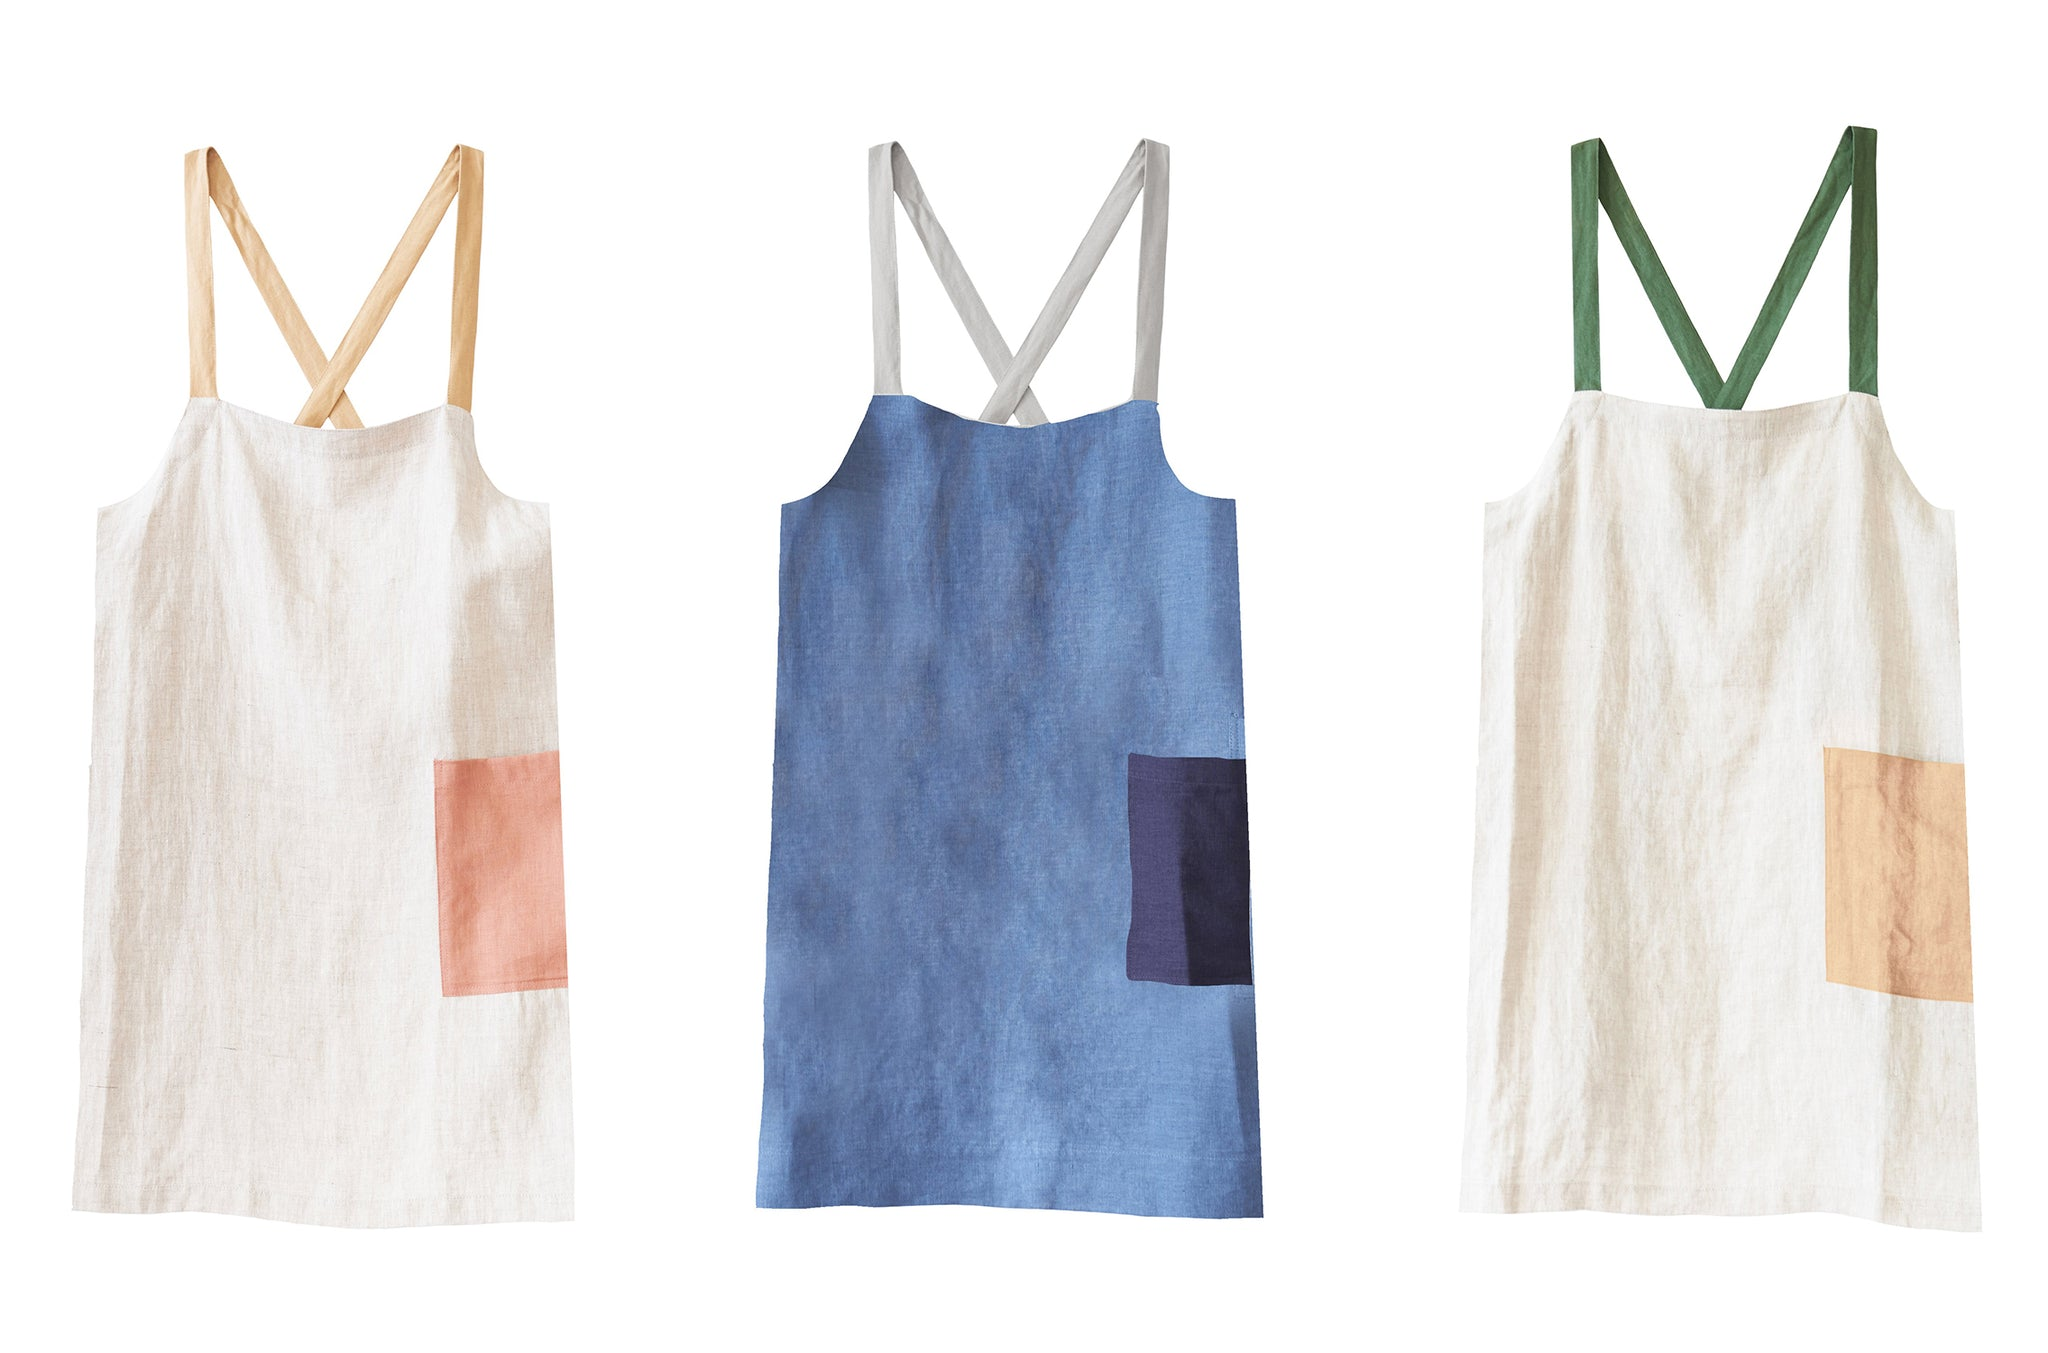 three aprons in sand color with pink pocket, indigo color with dark blue pocket, sand color with tan pocket and green straps